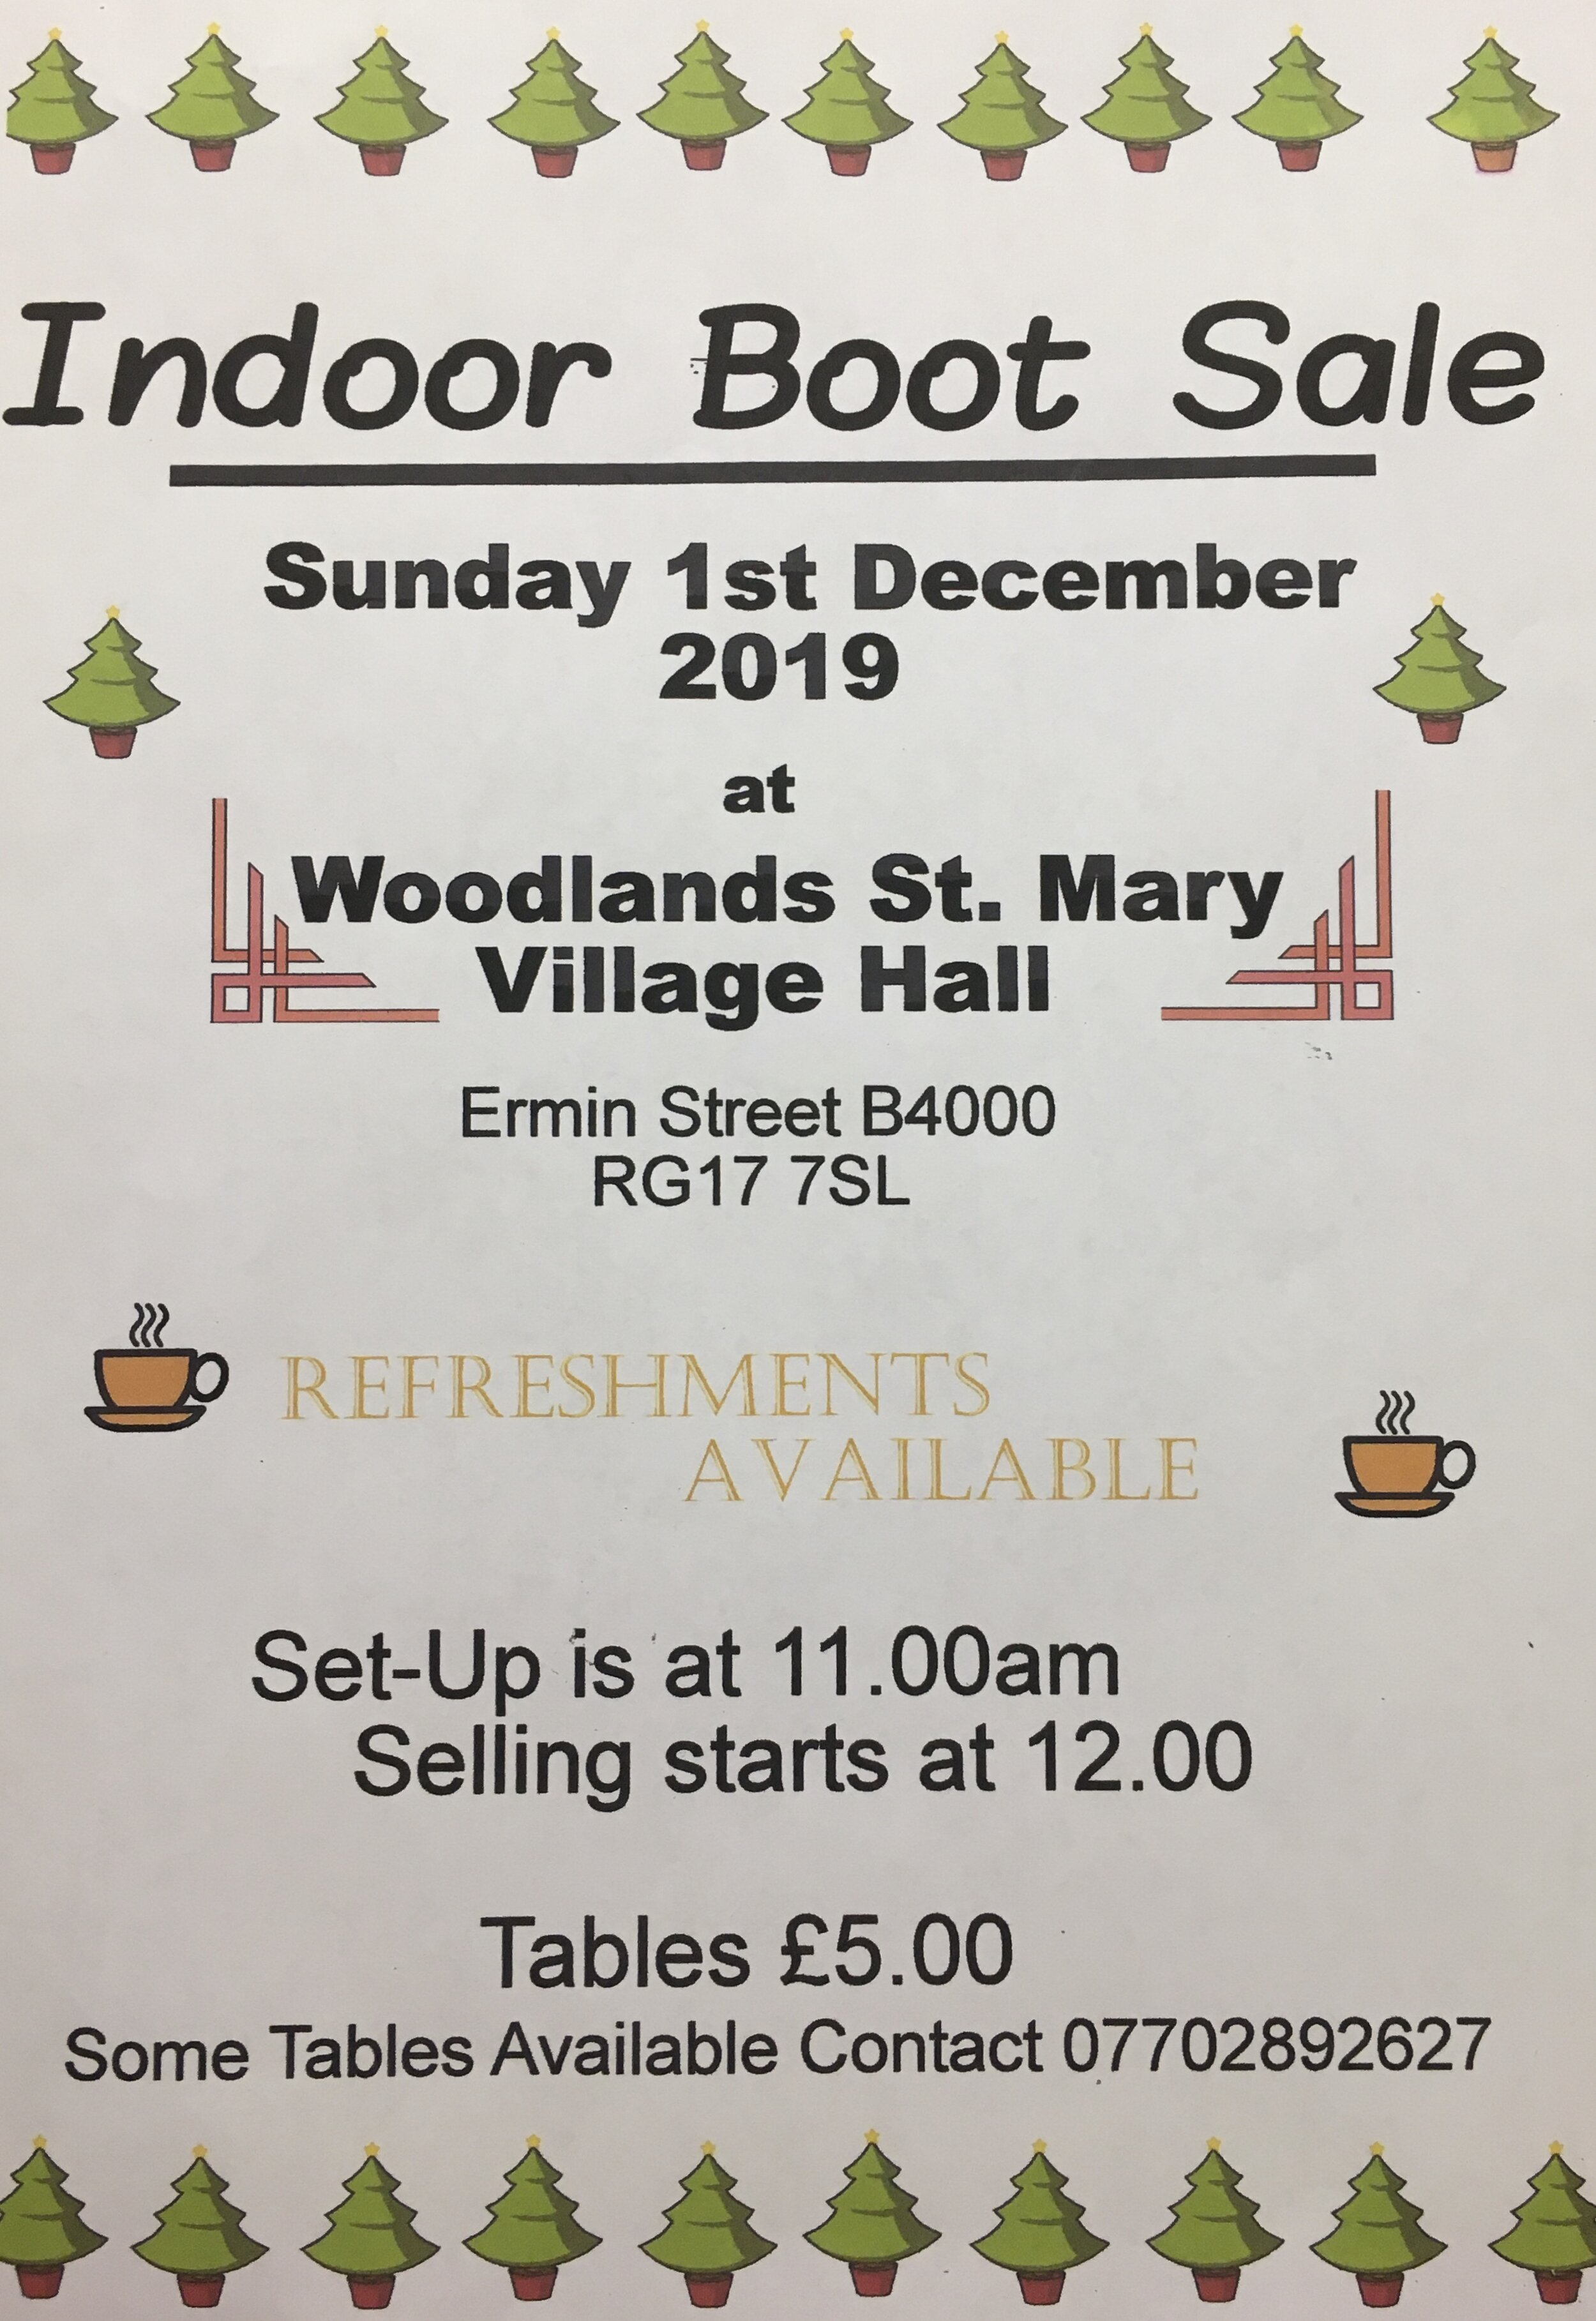 Woodlands St Mary Village Hall indoor Boot Sale